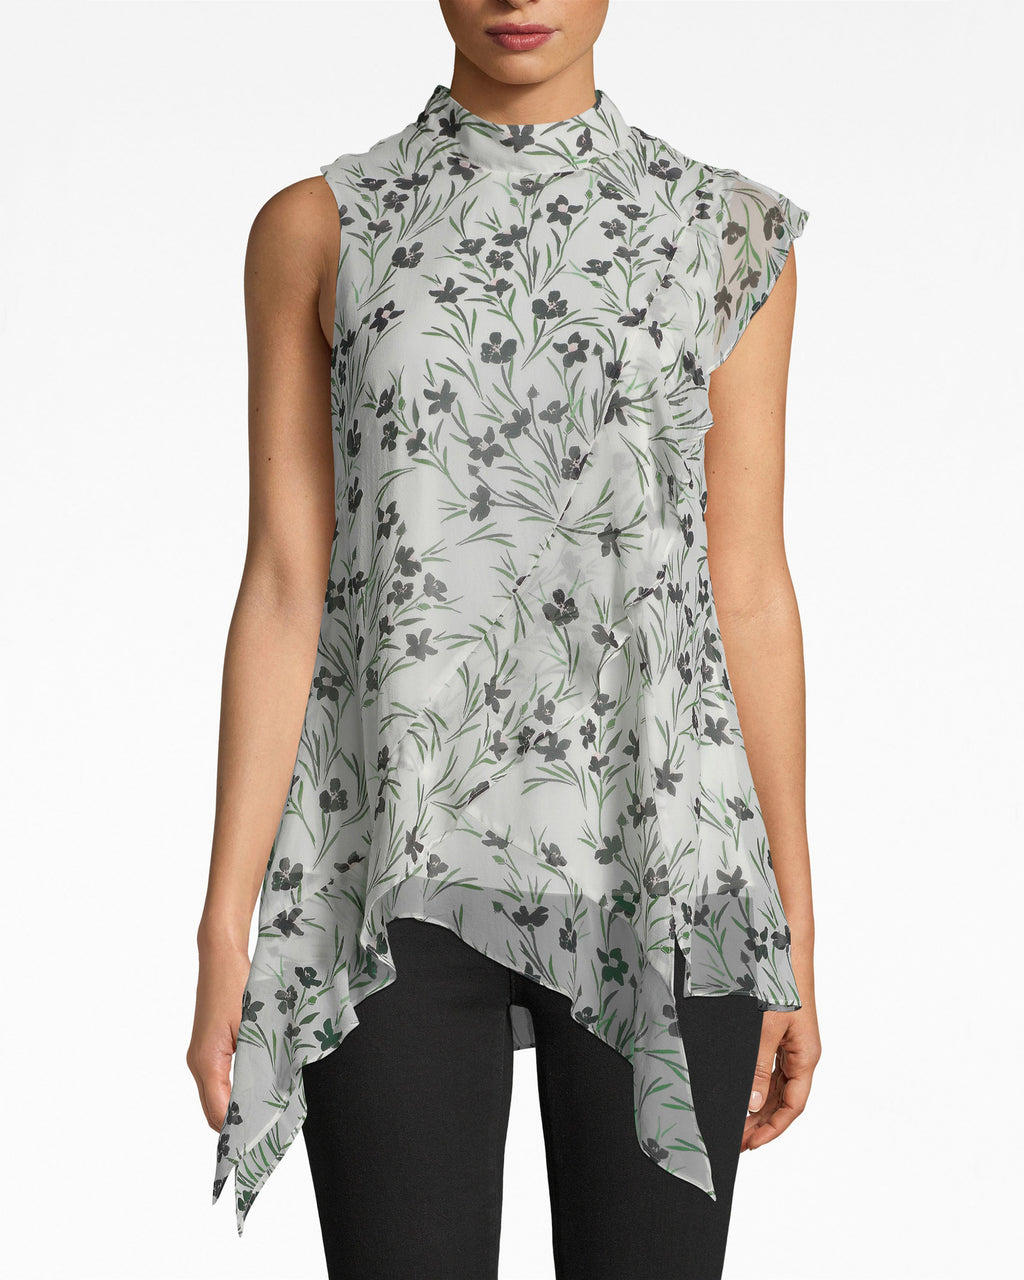 BE10383 - FLOWER PATCH SILK MOCK NECK BLOUSE - tops - blouses - HOW DARLING. OUR SILK BLOUSE IS ESSENTIAL FOR BRUNCH WITH THE PARENTS: IT HAS A MOCK NECK AND FEMININE, ASYMMETRICAL HEM. BACK NECK BUTTON FOR CLOSURE.